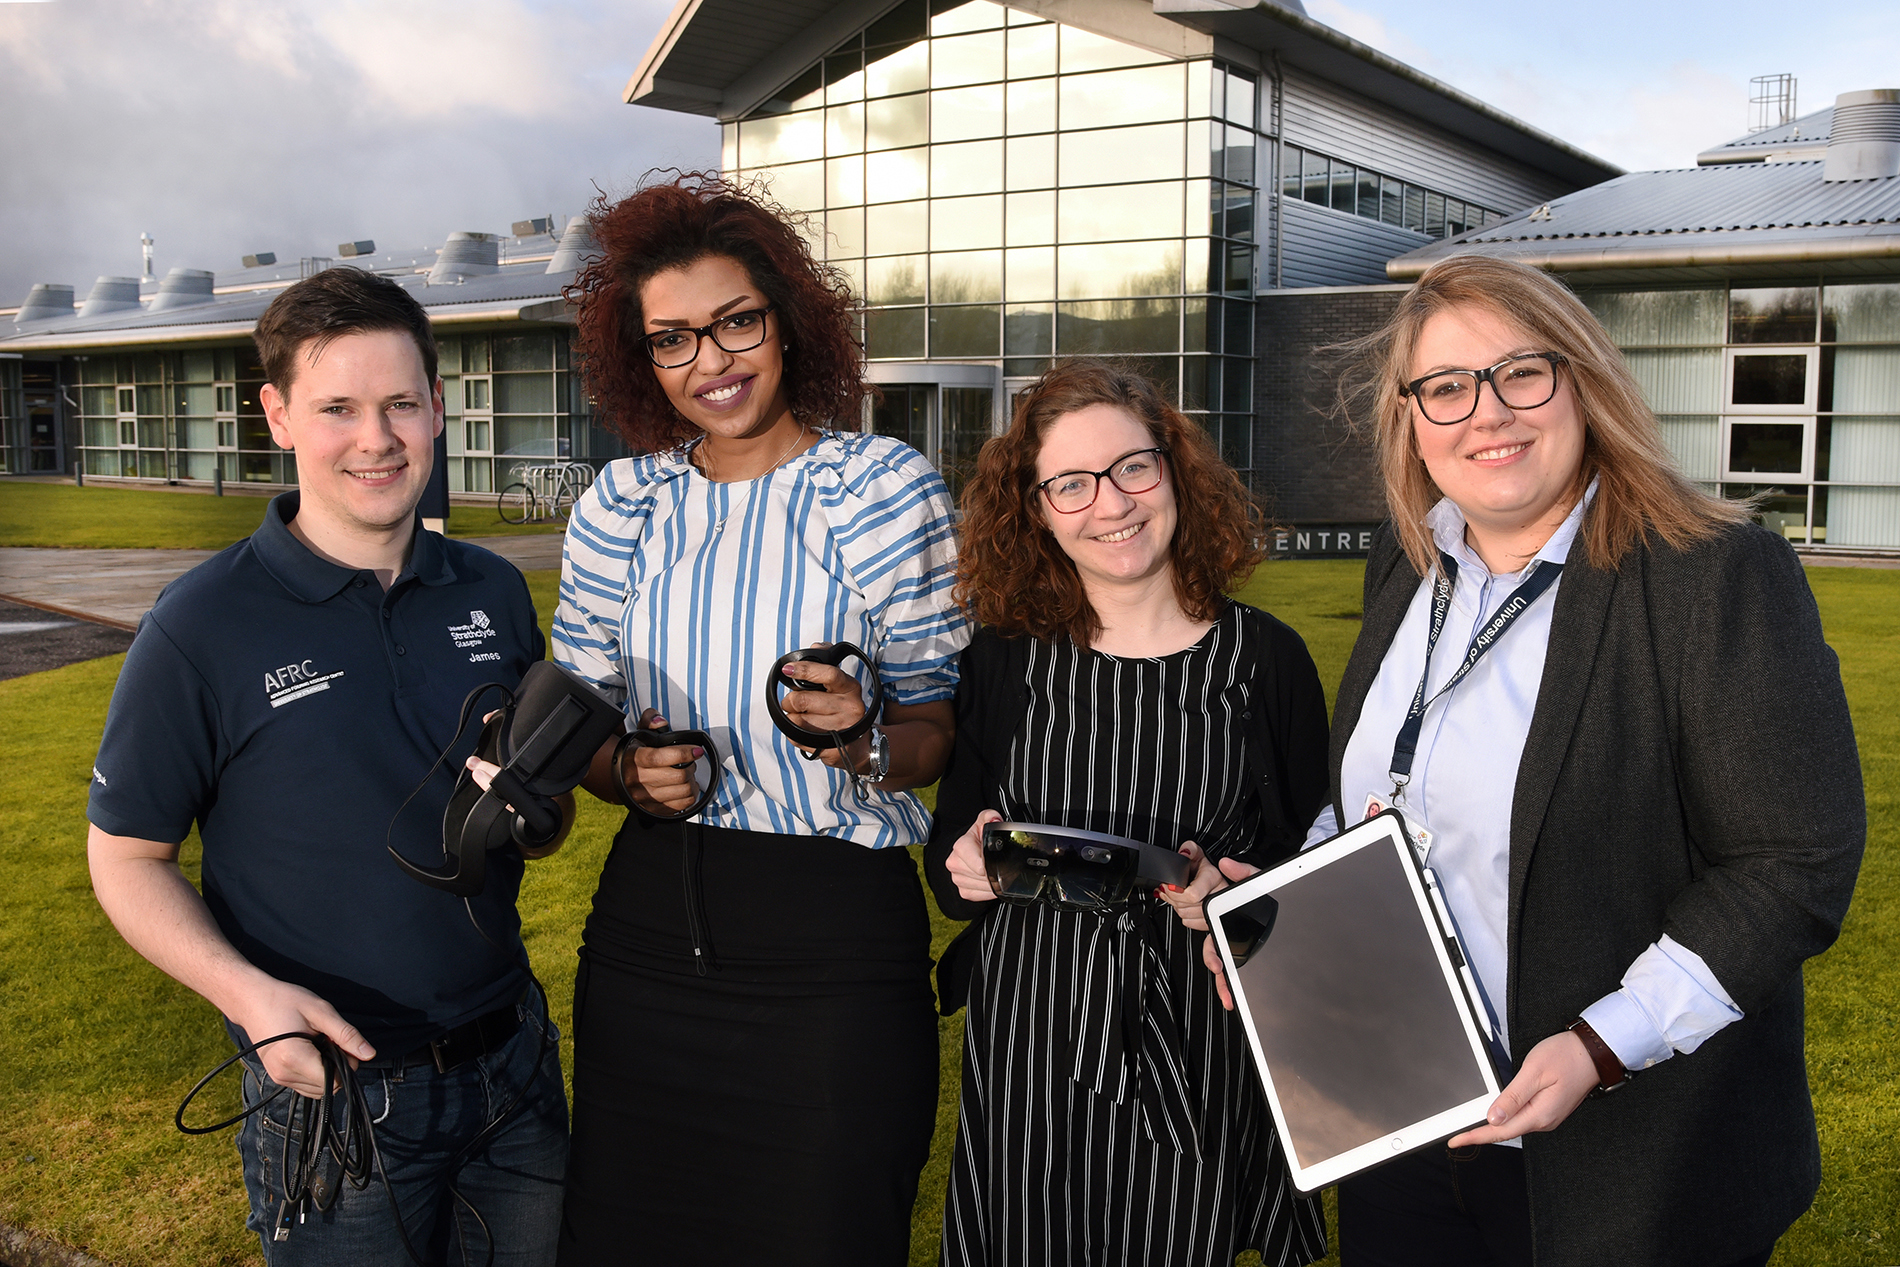 (Left to right) Strathclyde University PhD students James Reid, Fatin Abdalla, Ellie Smith and Maria Damaskou